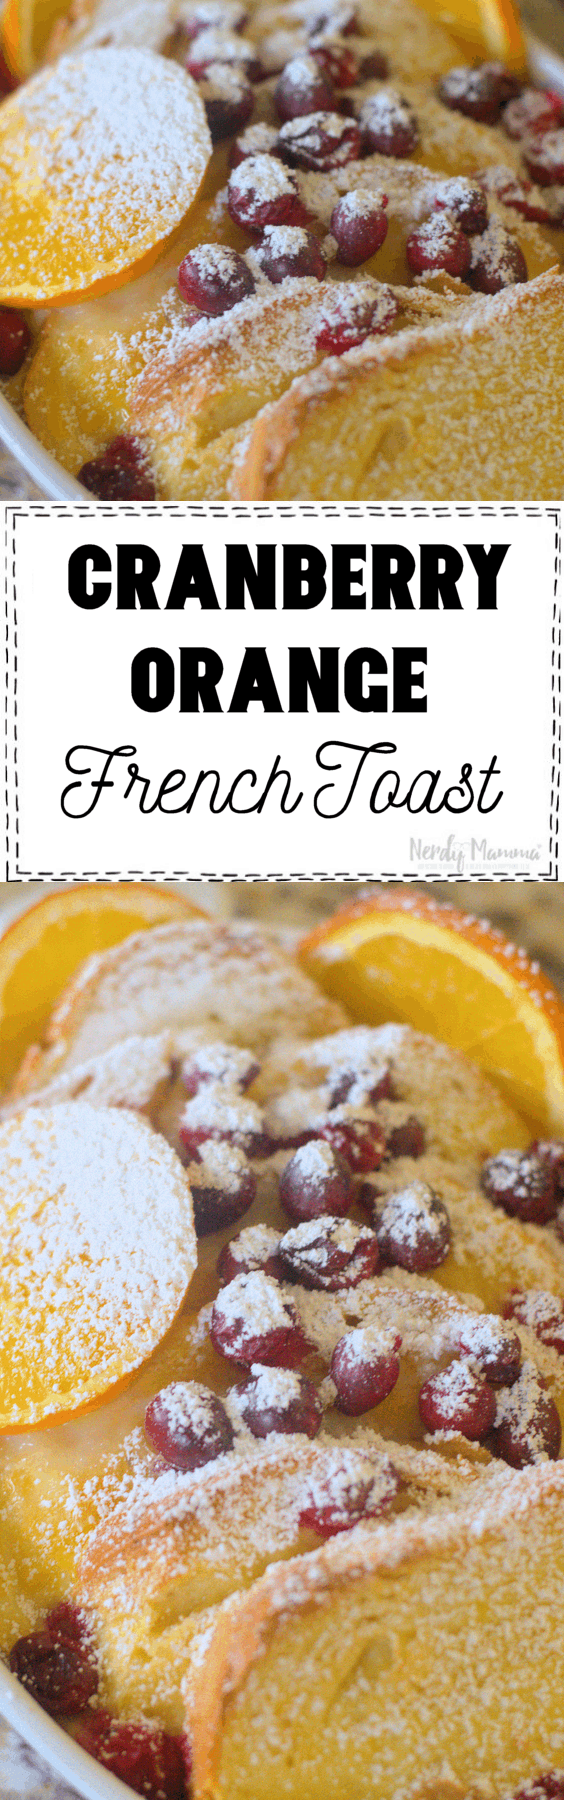 . Soon the blood oranges will be hitting the shelves and I tell you I cannot wait for that. This Cranberry Orange French Toast literally takes just minutes to put together.